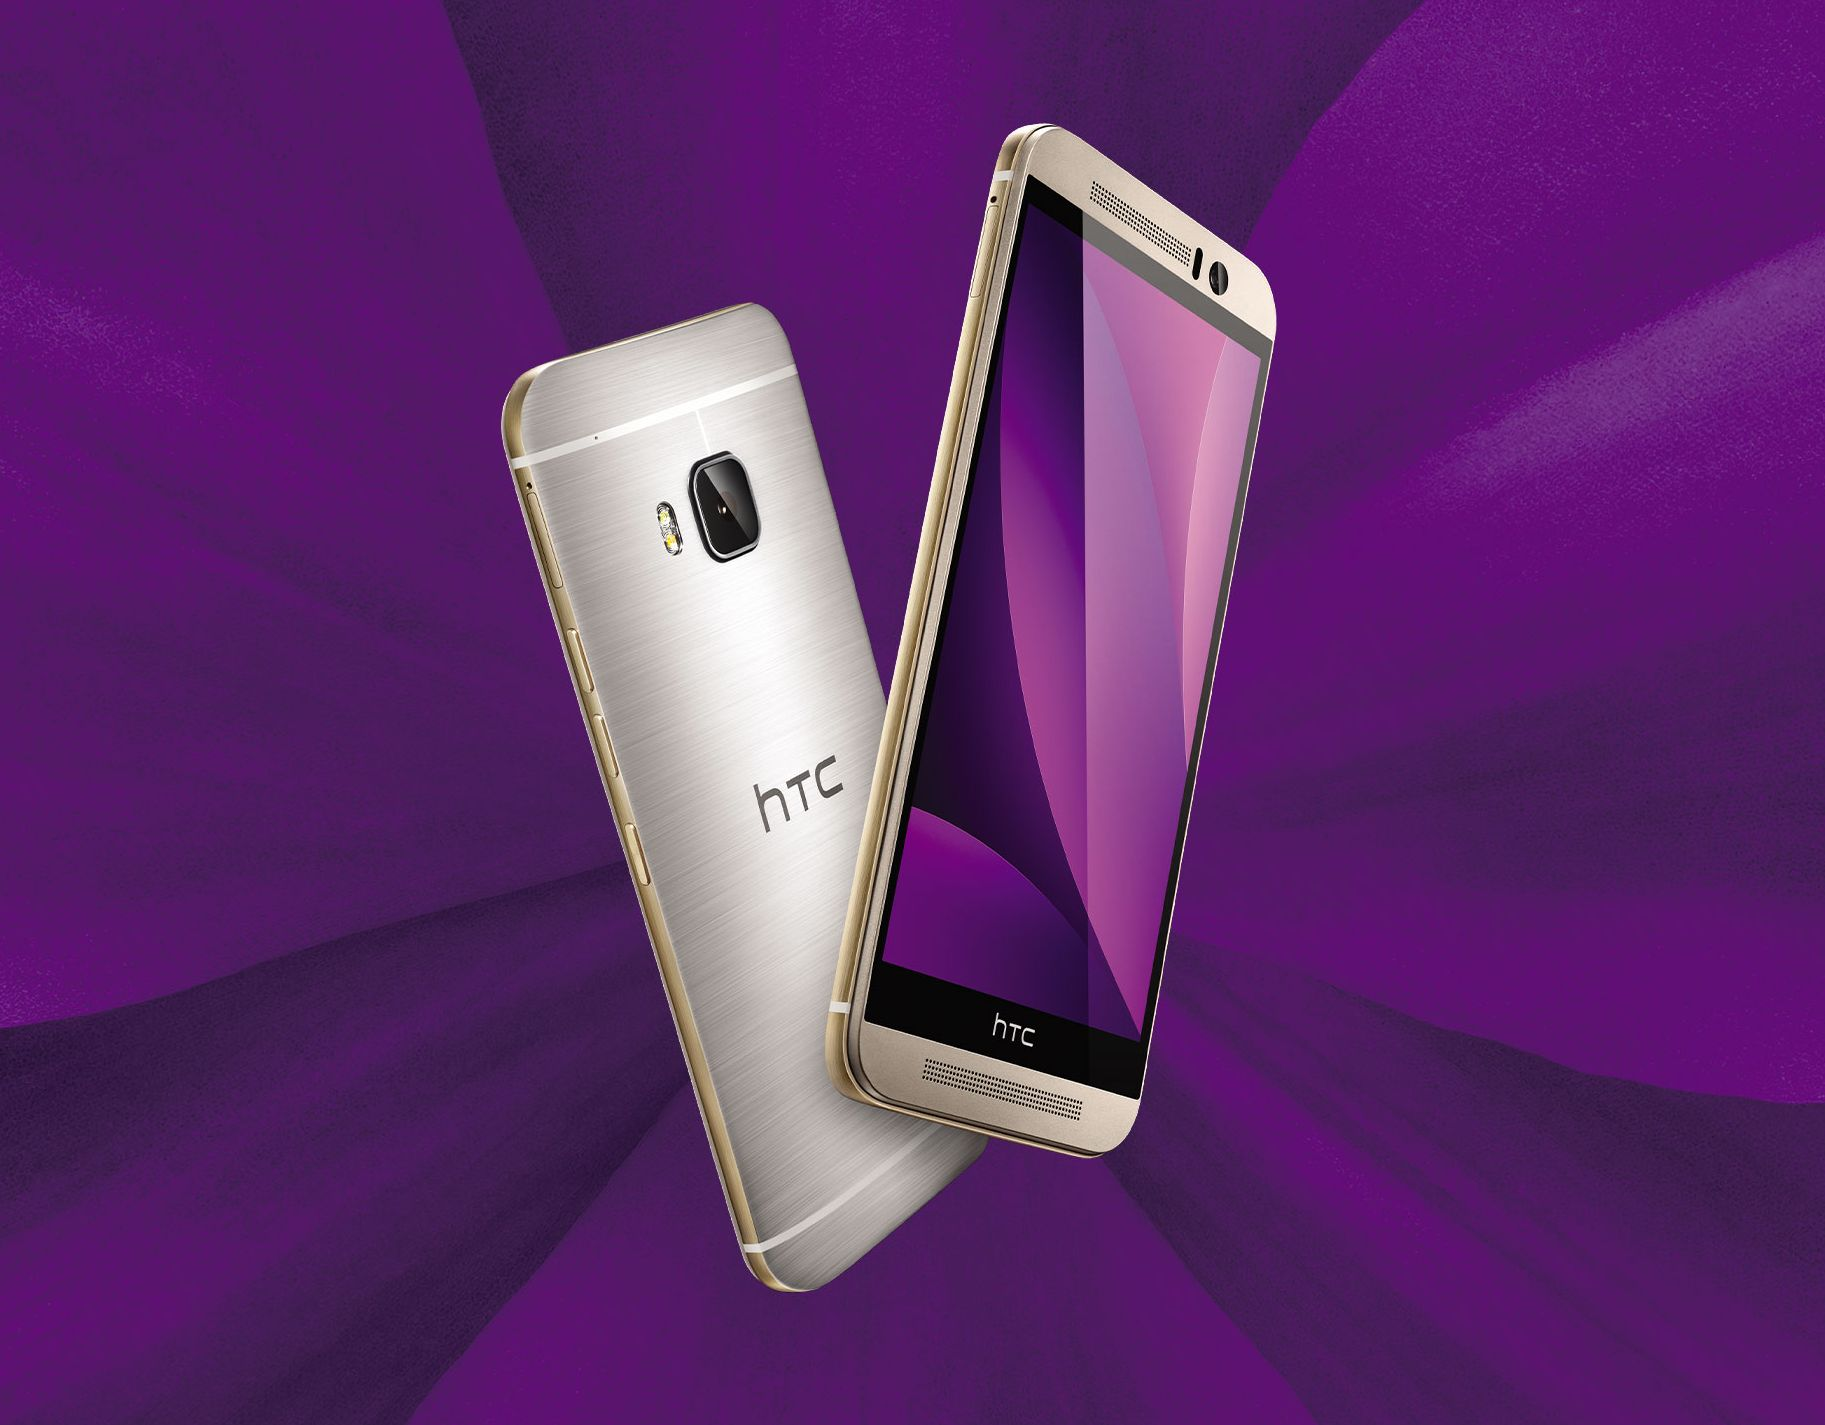 HTC One M9s Android Smartphone